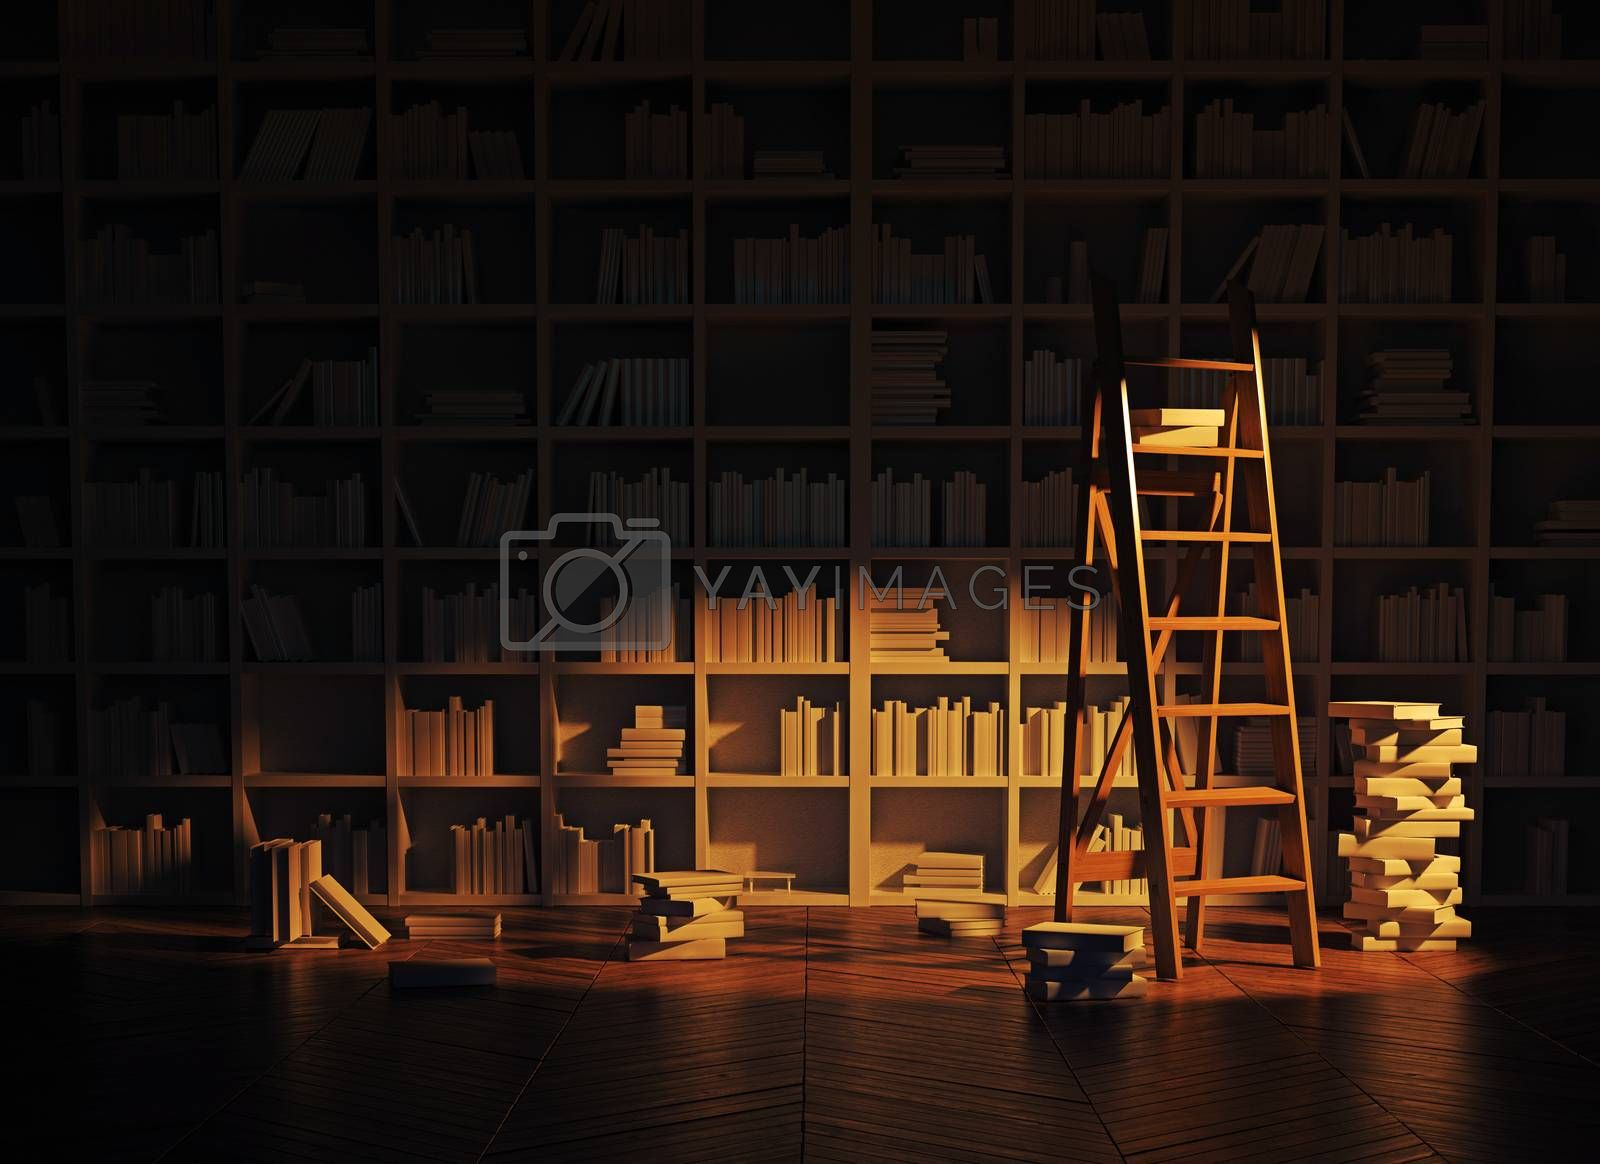 night lighting in the library interior. 3d rendering